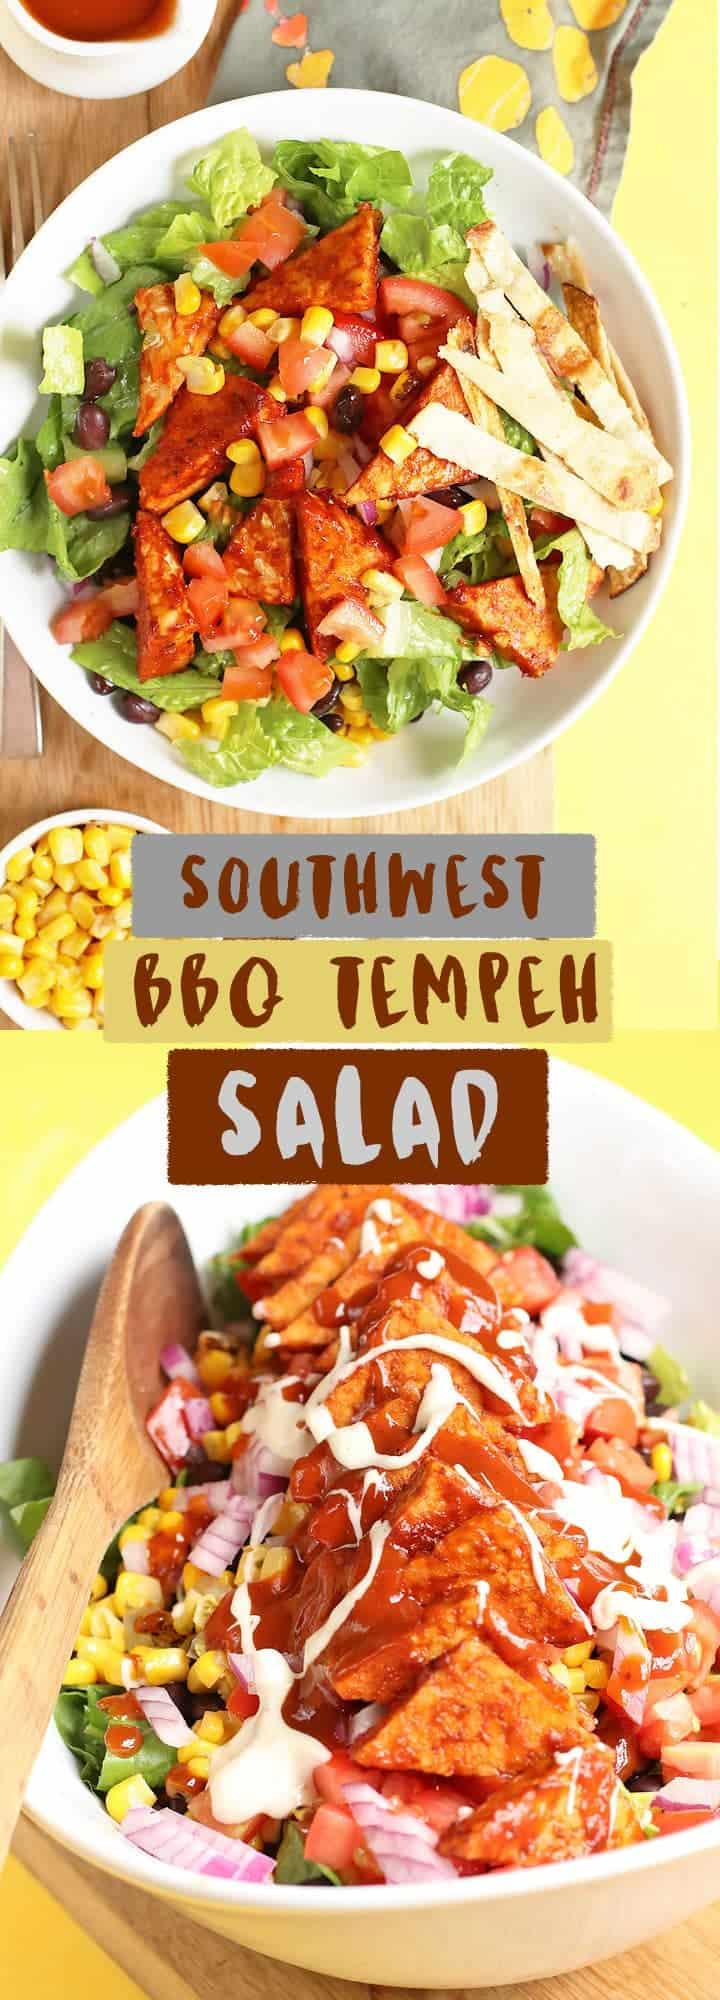 This Southwest BBQ Tempeh Salad is made with baked BBQ Tempeh, fresh vegetables, and homemade ranch dressing for a delicious vegan and gluten-free summer salad.